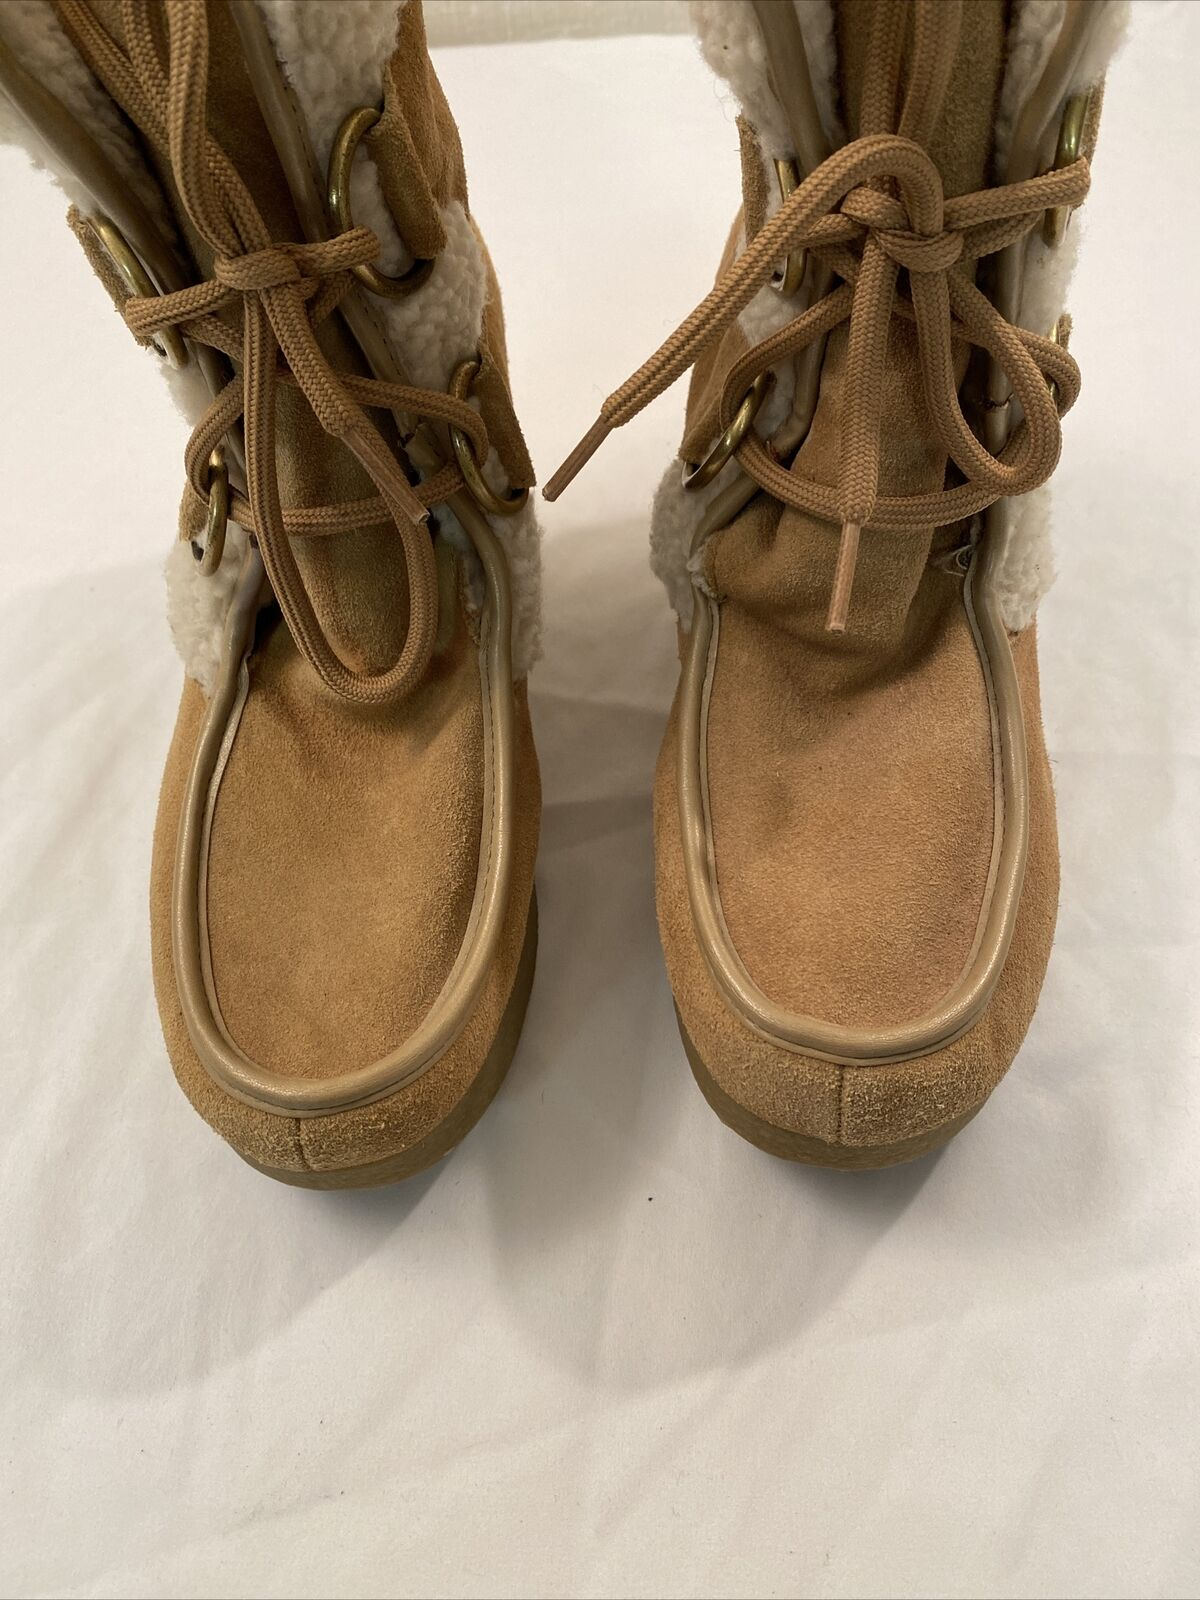 tommy hilfiger Brown boots women 8M - image 6